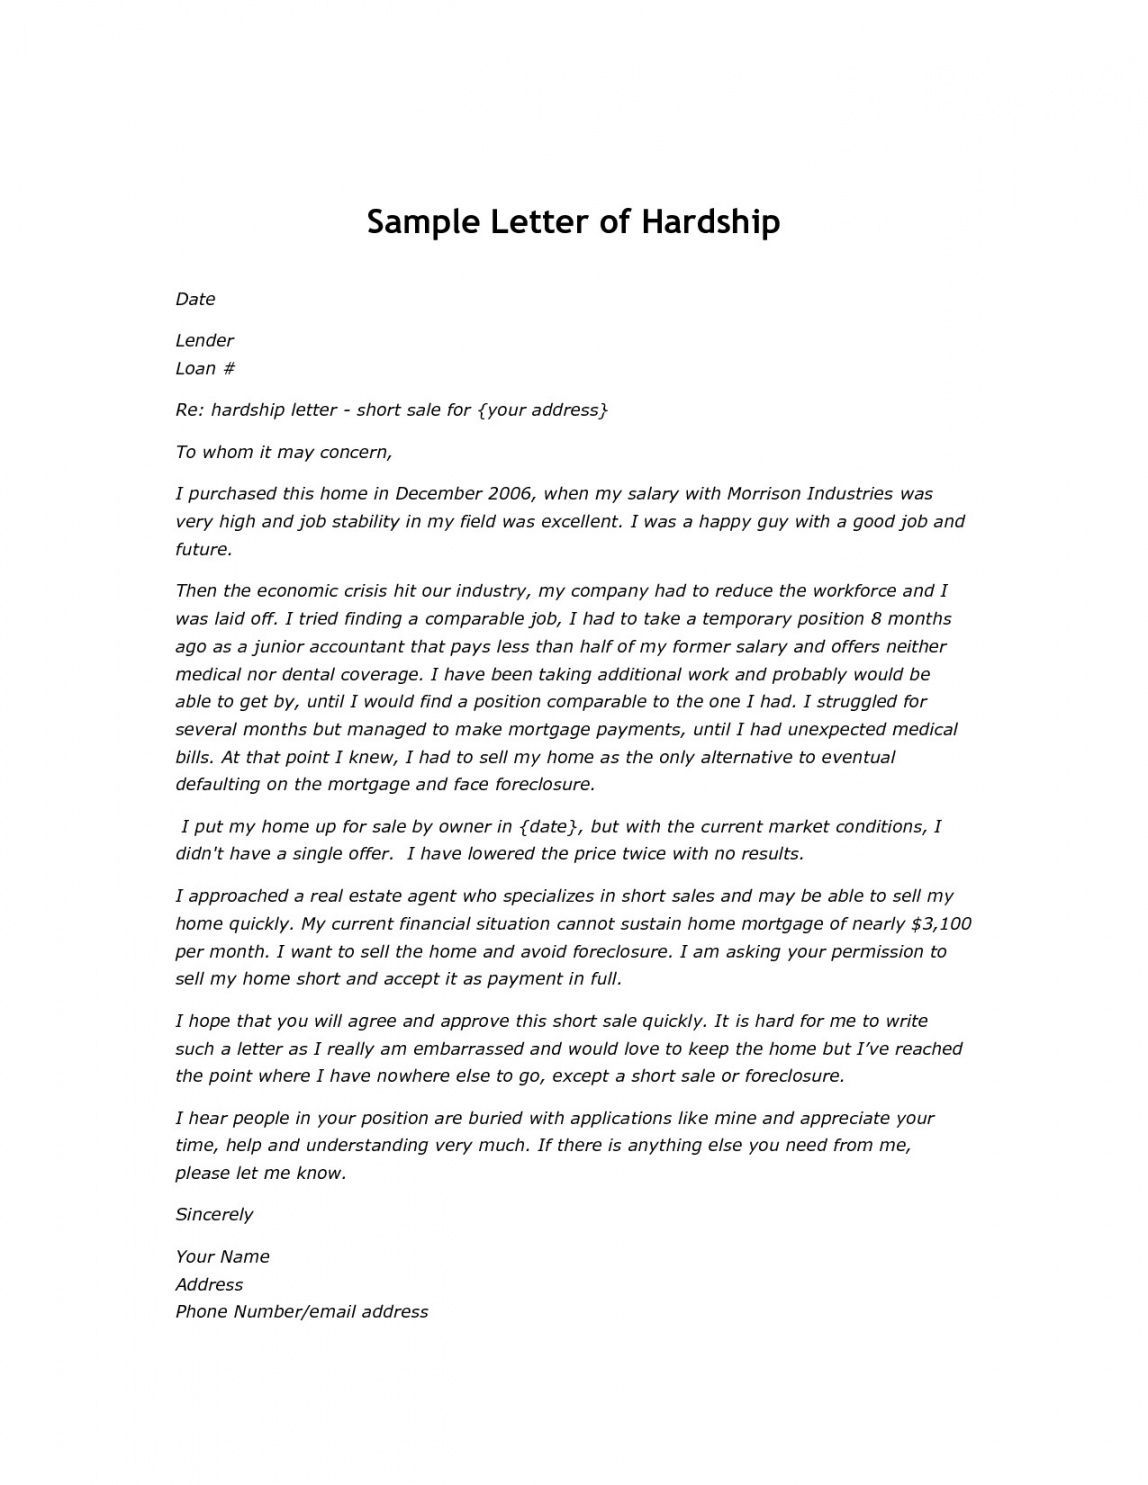 Costum Hardship Letter For Mortgage Modification Template Word